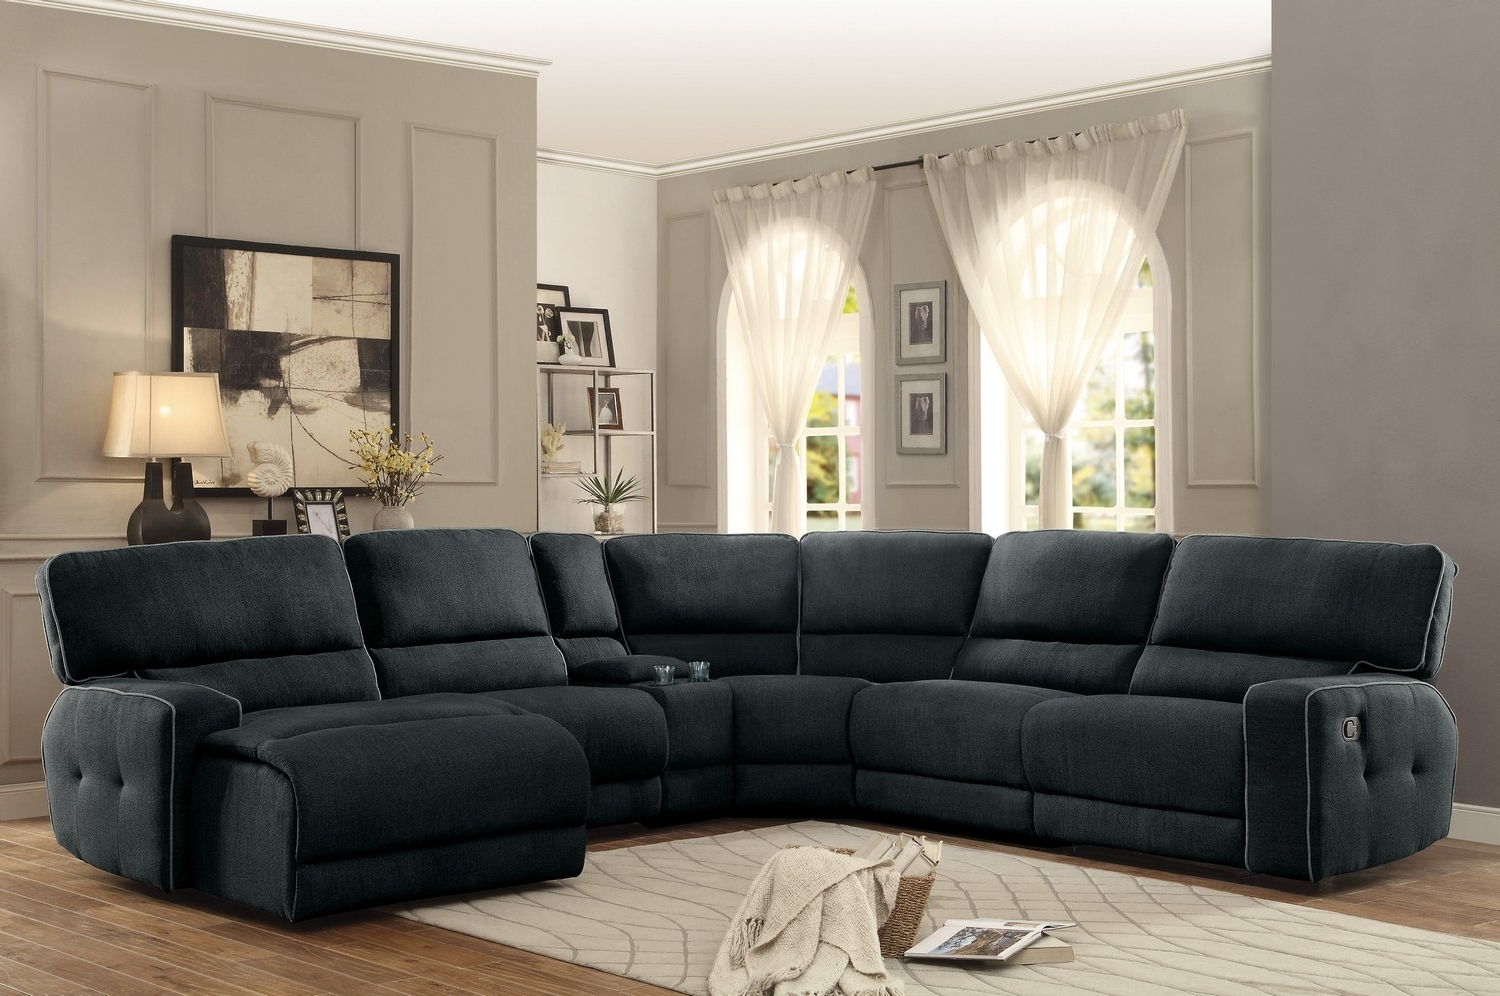 Dallas Sectional Sofas Within Most Current Homelegance Keamey Reclining Sectional Sofa Set A – Polyester (View 6 of 15)